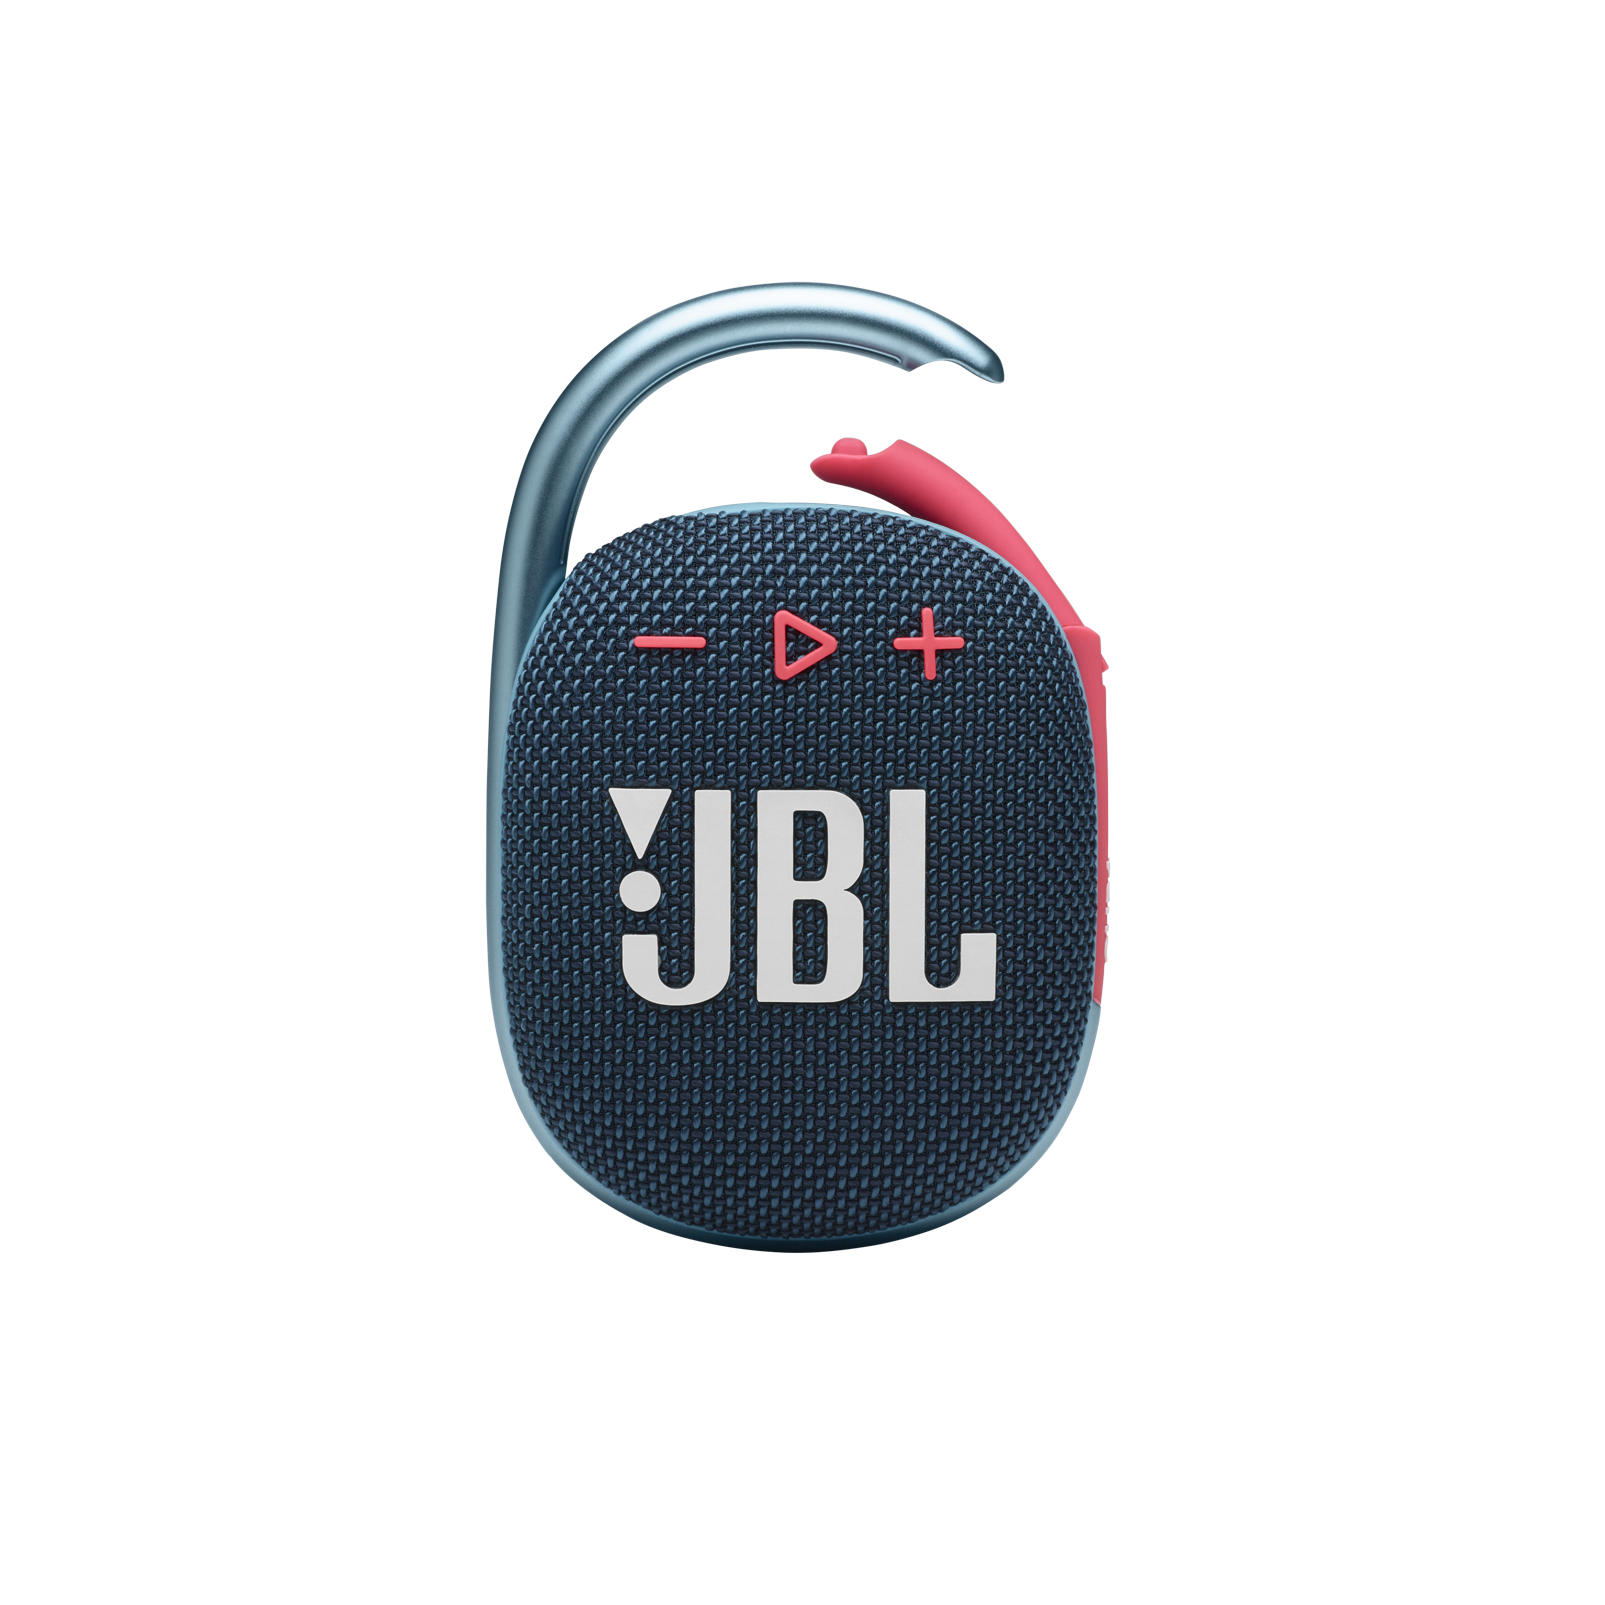 JBL CLIP 4 - Blue / Pink - Ultra-portable Waterproof Speaker - Front